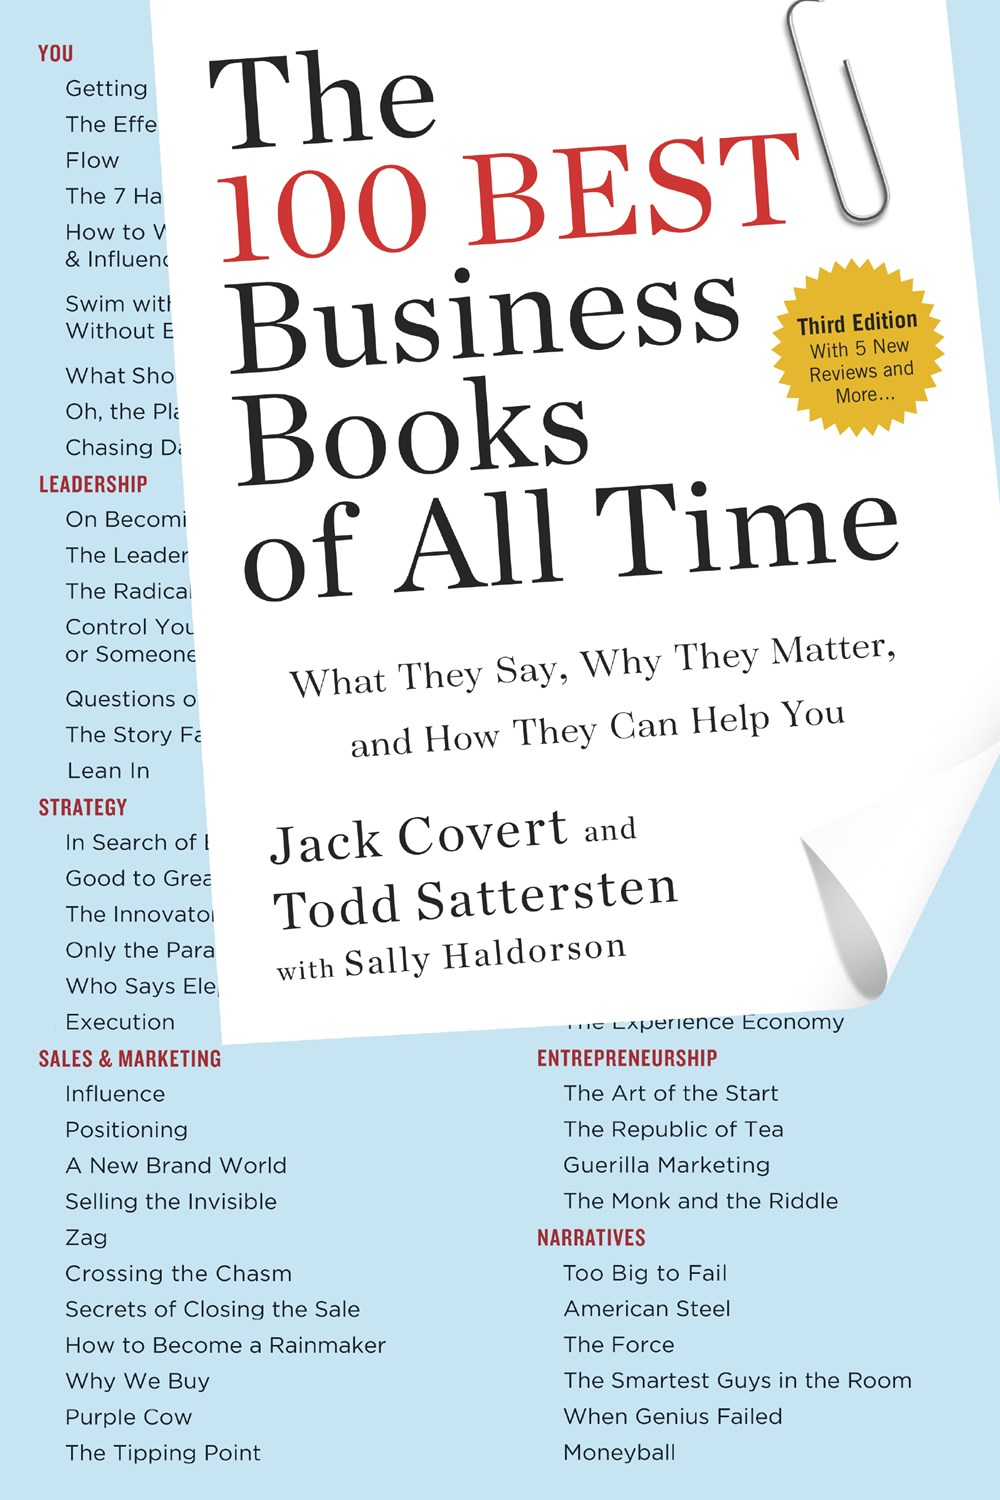 100 Best Business Books of All Time What They Say, Why They Matter, and How They Can Help You